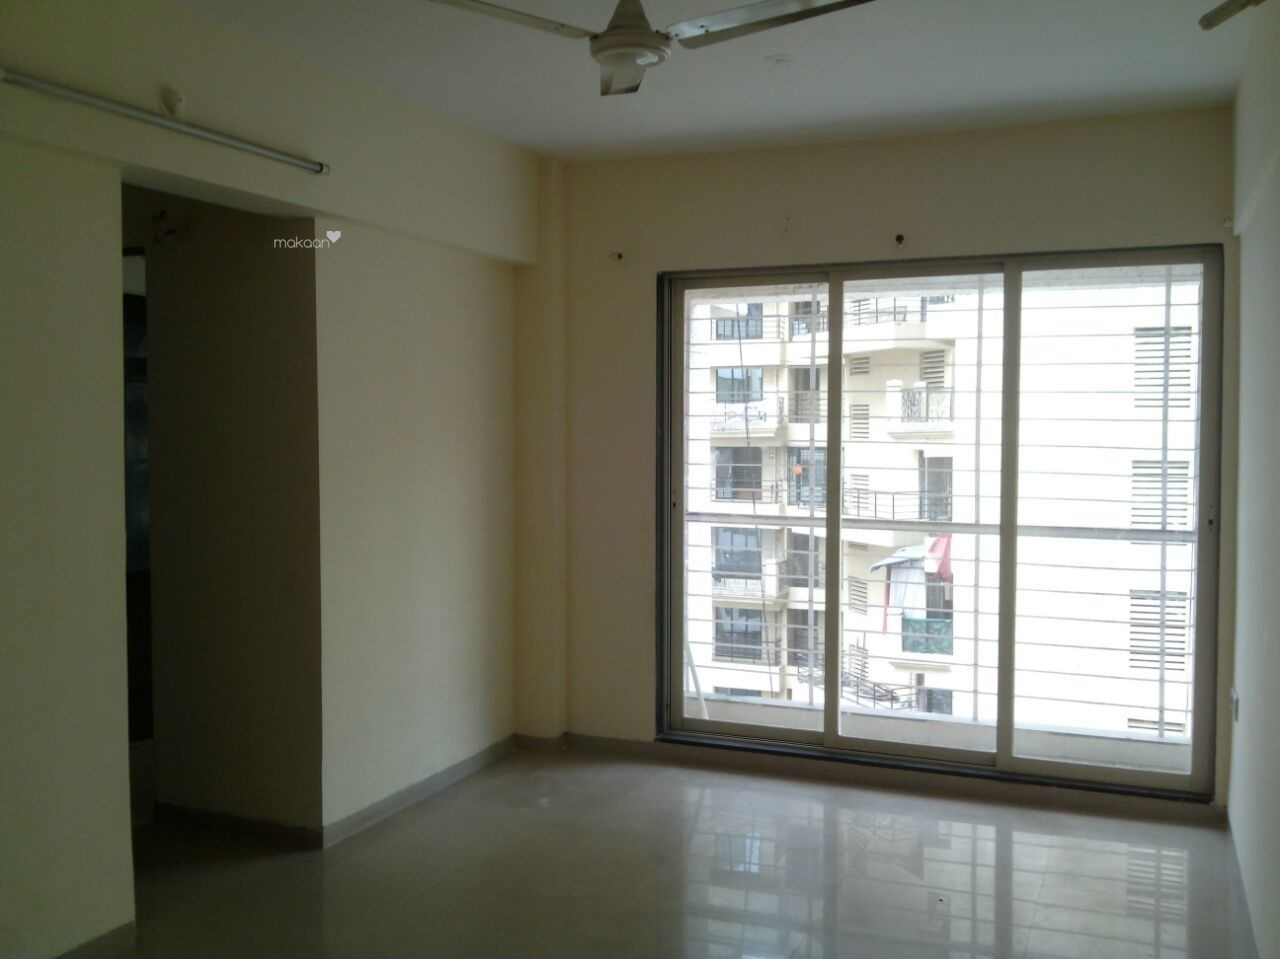 1500 sq ft 3BHK 3BHK+3T (1,500 sq ft) Property By Bhoomi Enterprises In Project, Kharghar